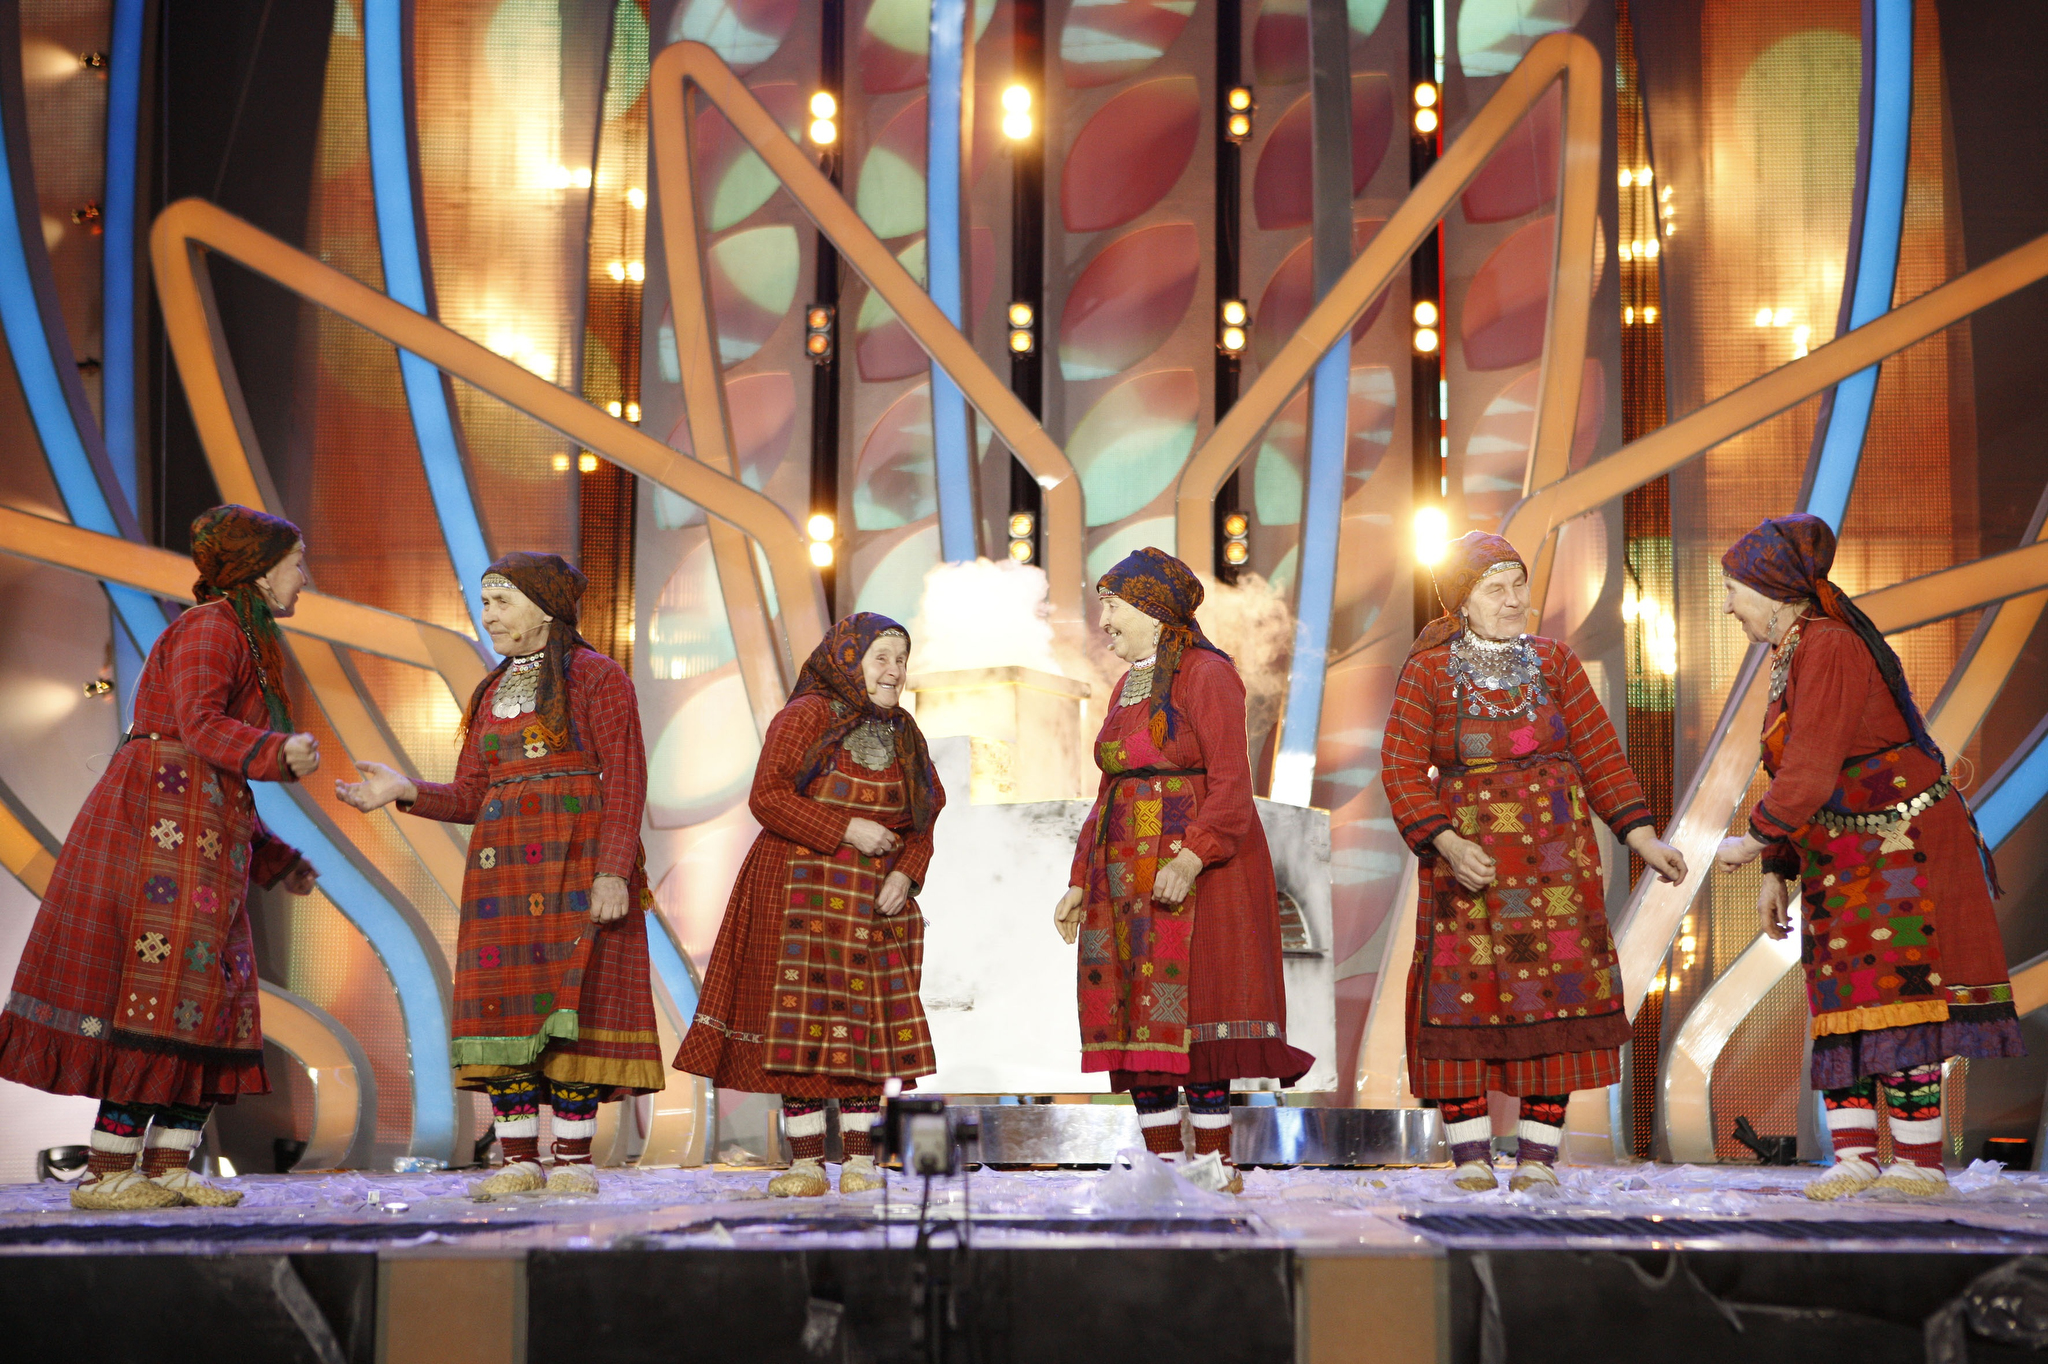 A Russian group known as the Buranovskiye Babushki, or Buranovo Grannies, perform during Eurovision in Moscow, Russia, Wednesday, March 7, 2012.